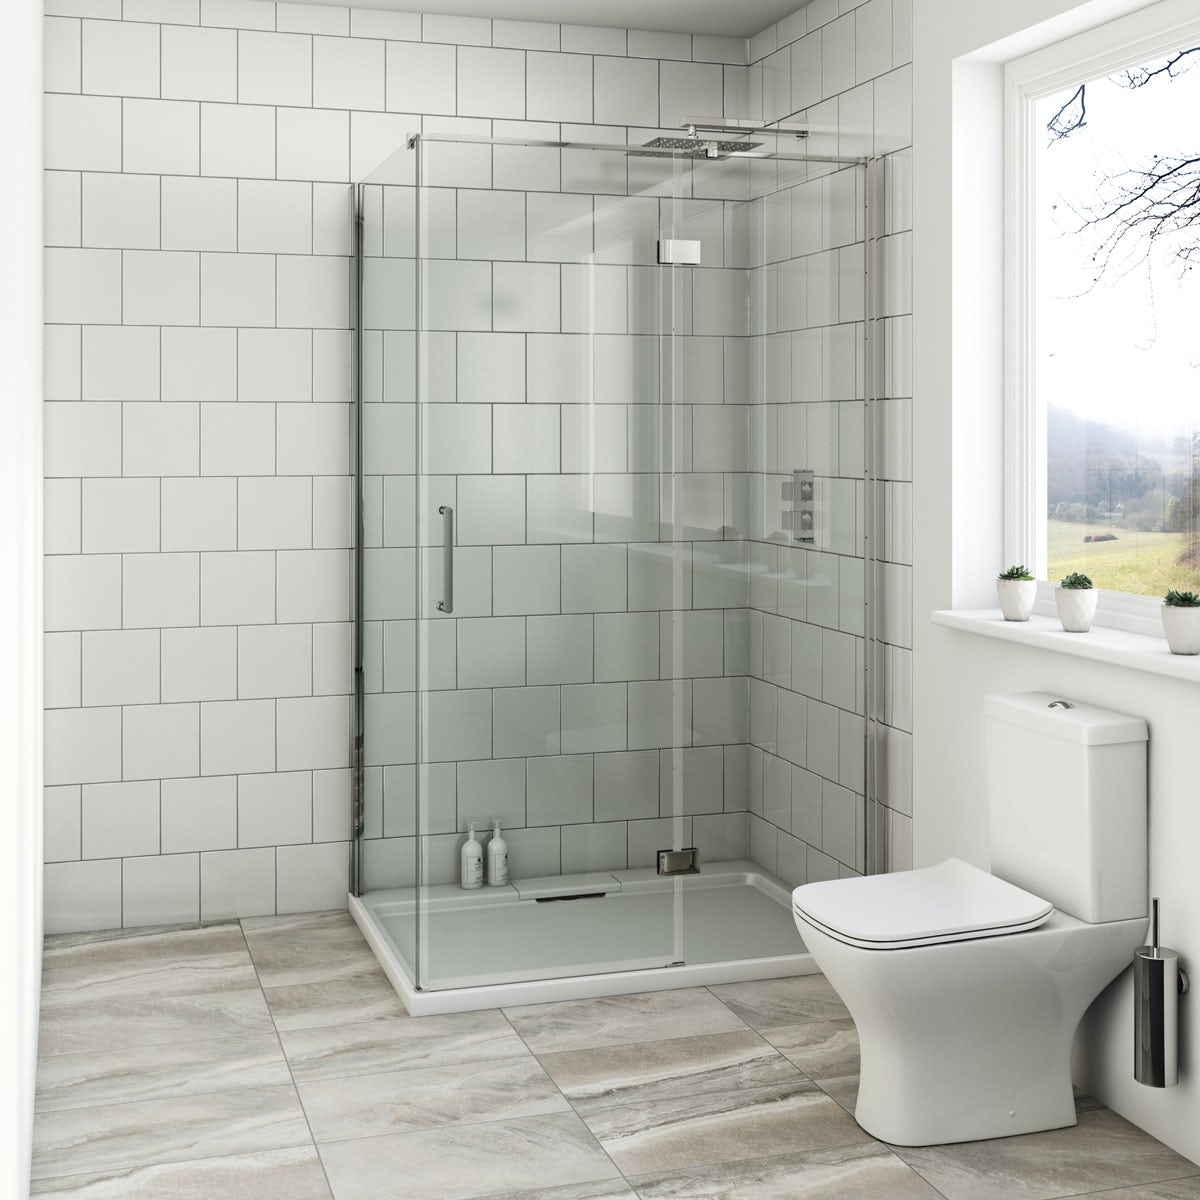 Mode Austin premium 8mm hinged easy clean shower enclosure 900 x 760